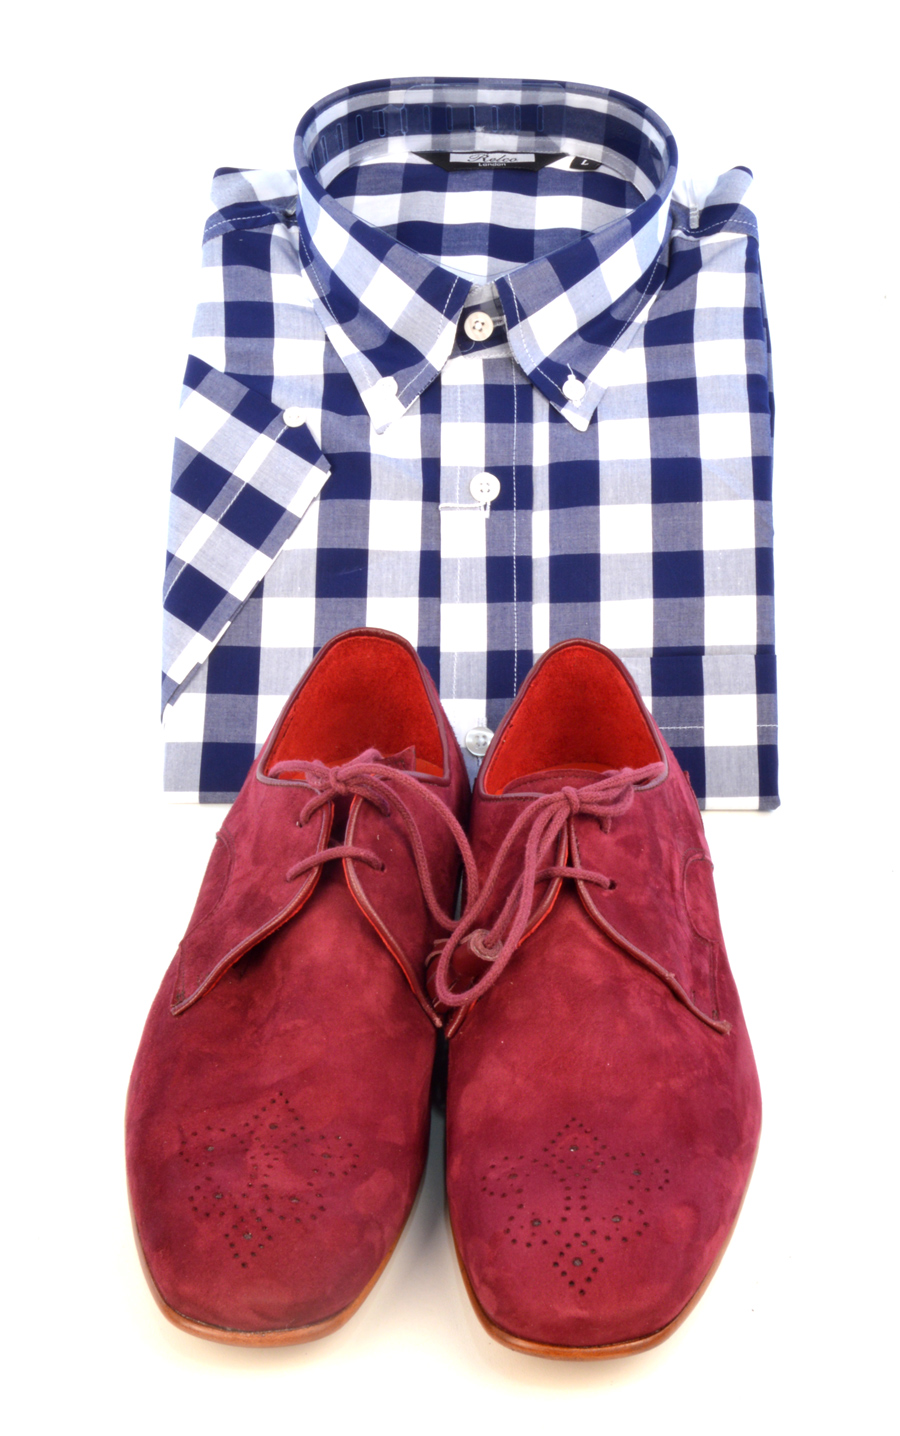 modshoes-jeffery-west-and-check-shirt